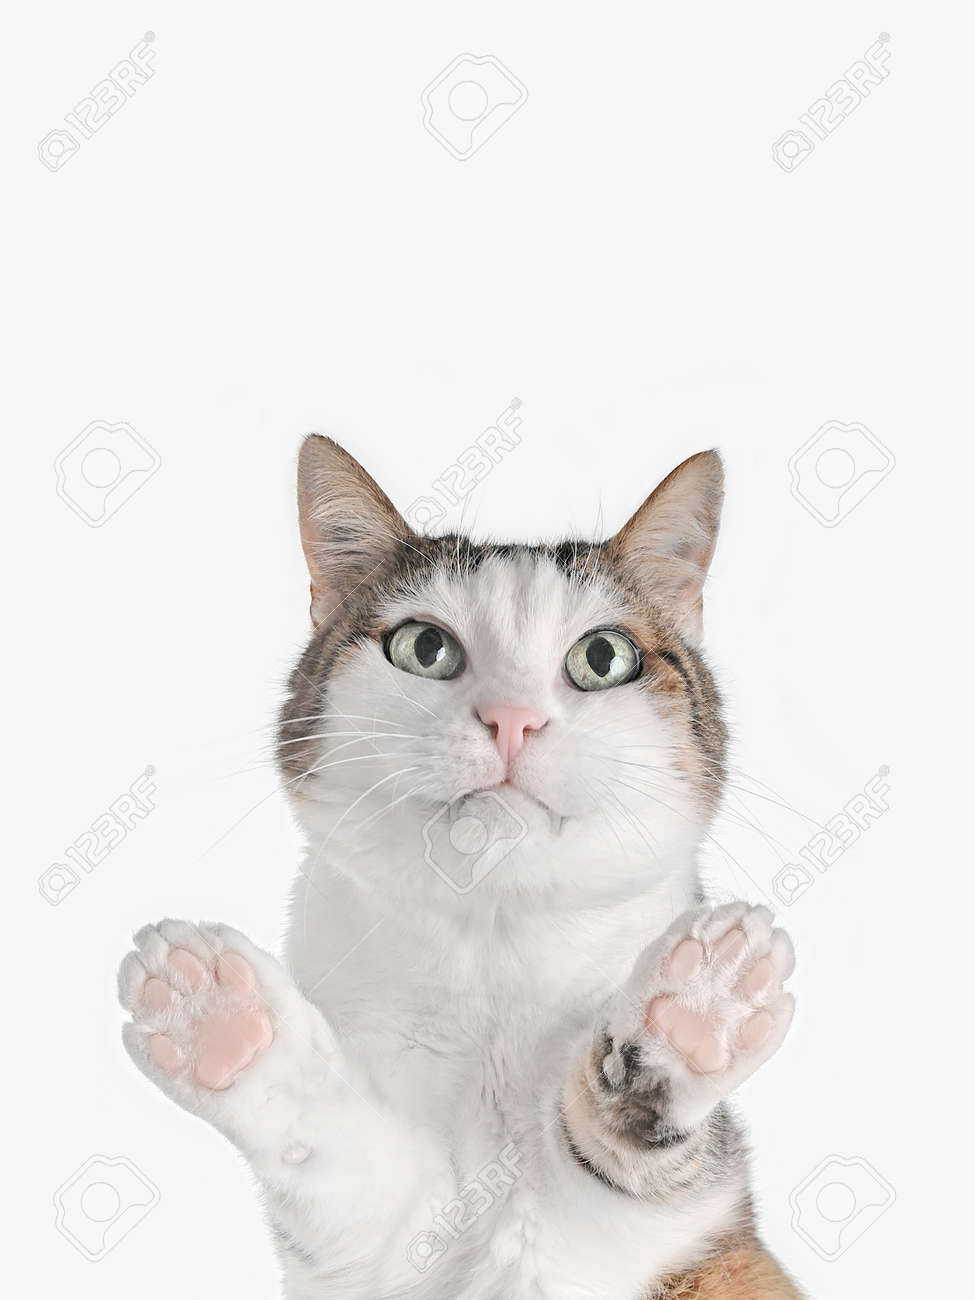 Cute tabby cat looking at camera. . Bottom view with copy space. - 168691057